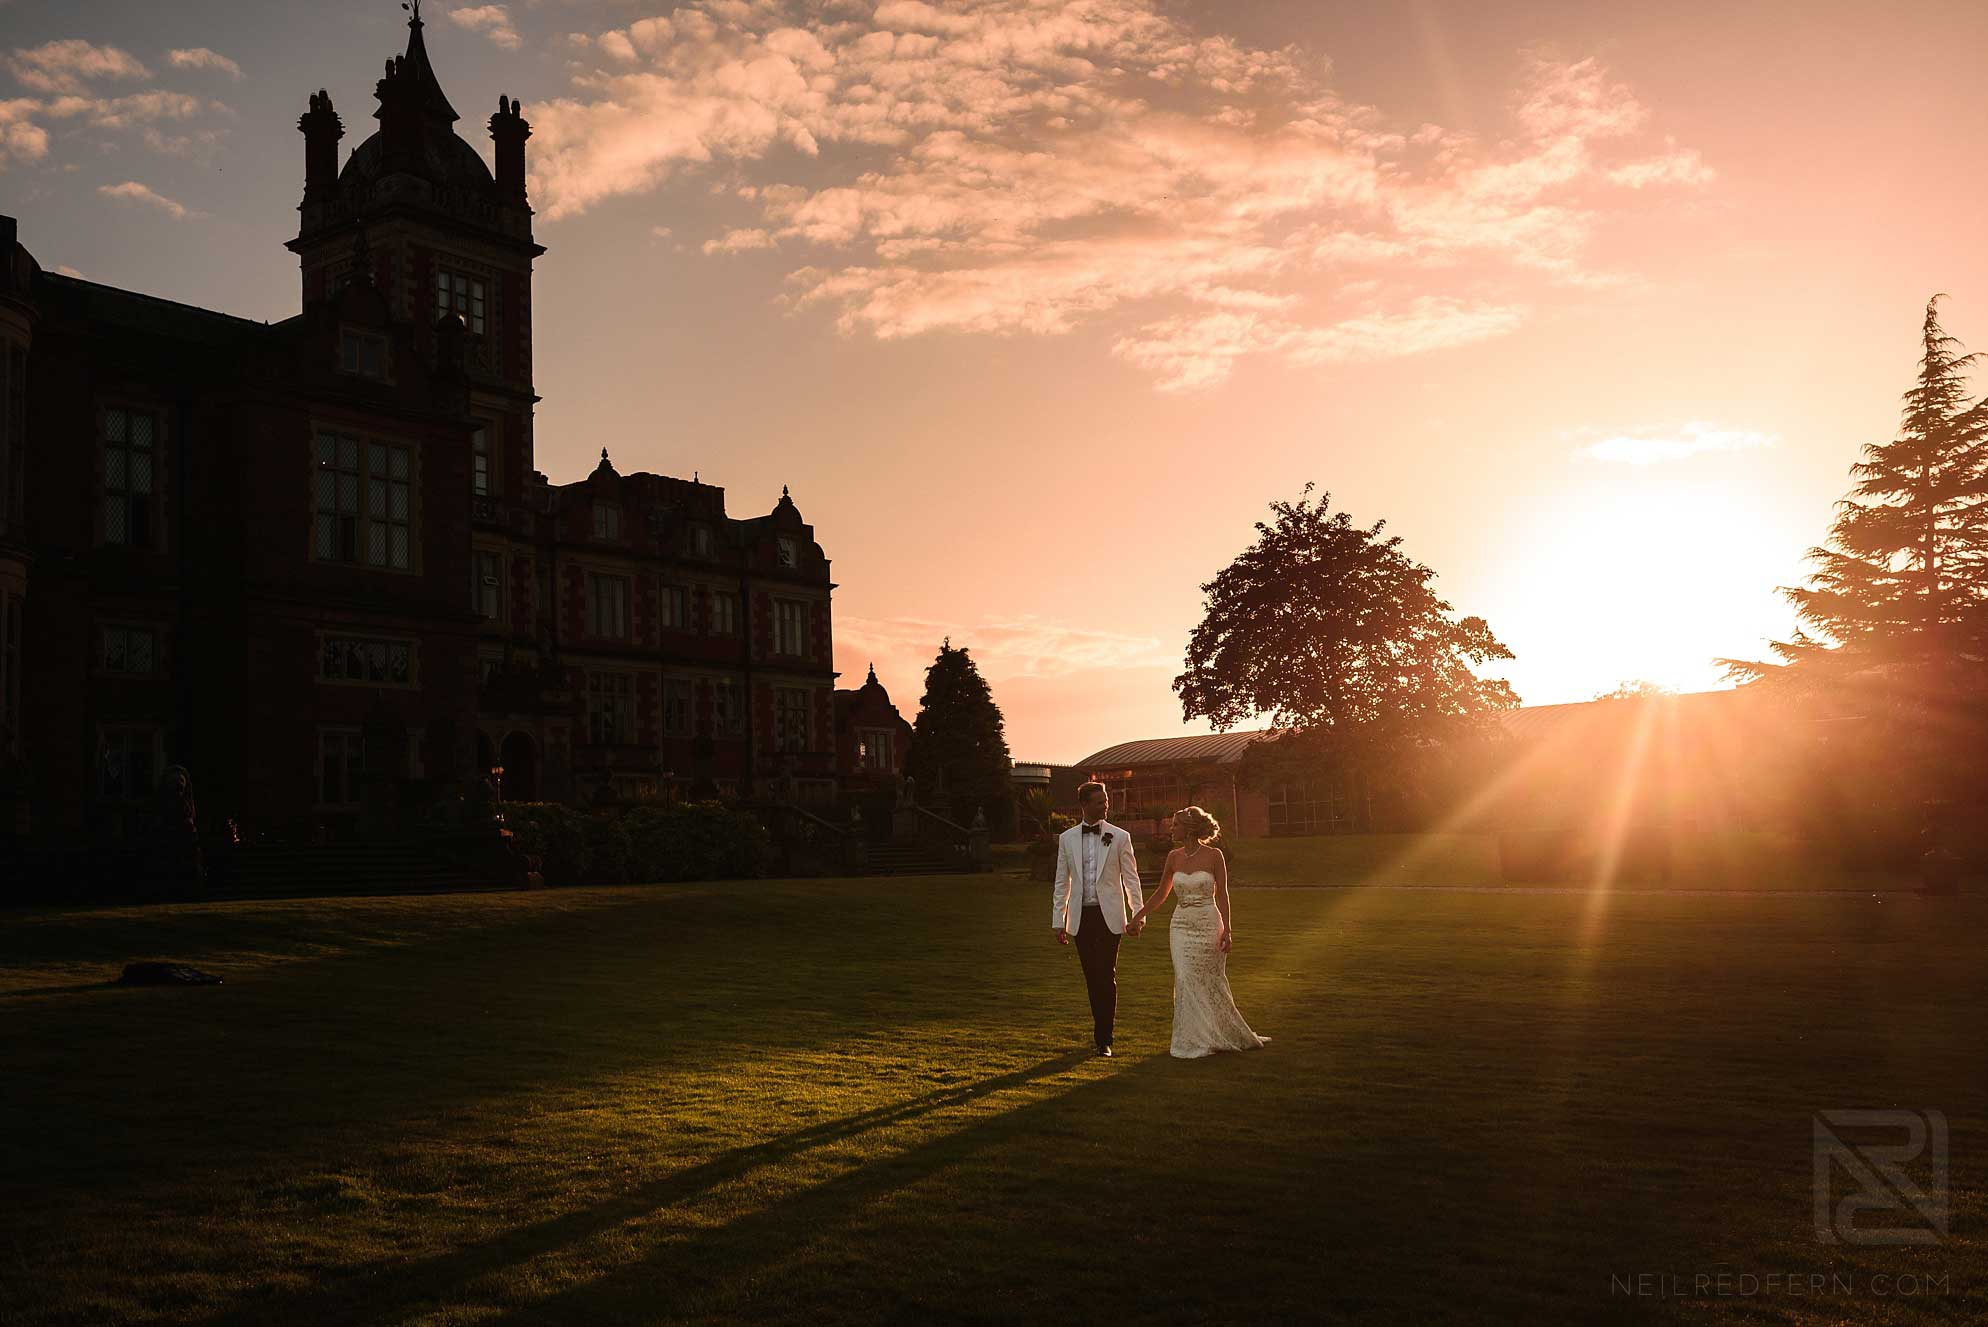 bride and groom walking in gardens of Crewe Hall at sunset